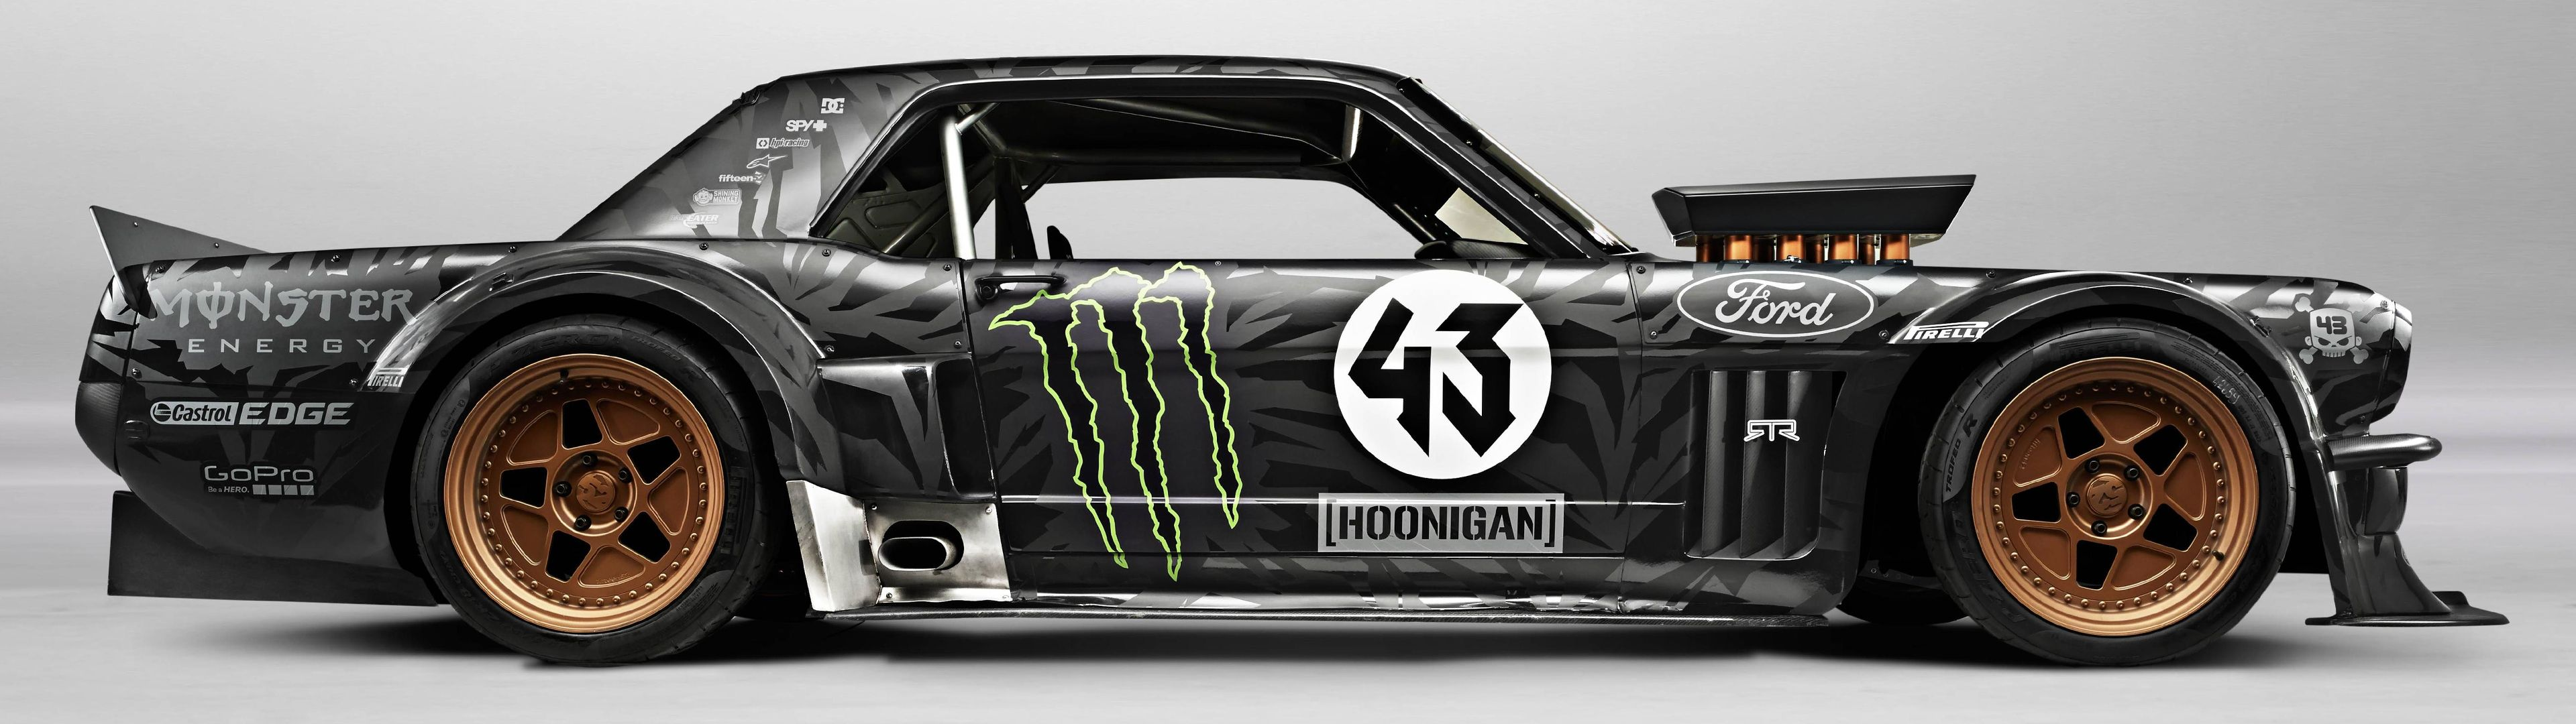 Someone Asked For Dual 16 9 Cars 3840x1080 3840x1080 Wallpaper Rims Design 3840x1080 Wallpapers